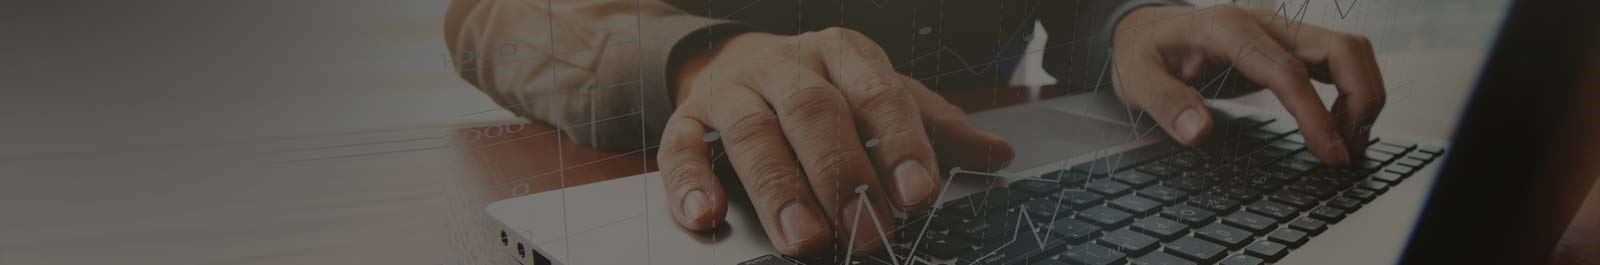 Header image - fingers on a keyboard